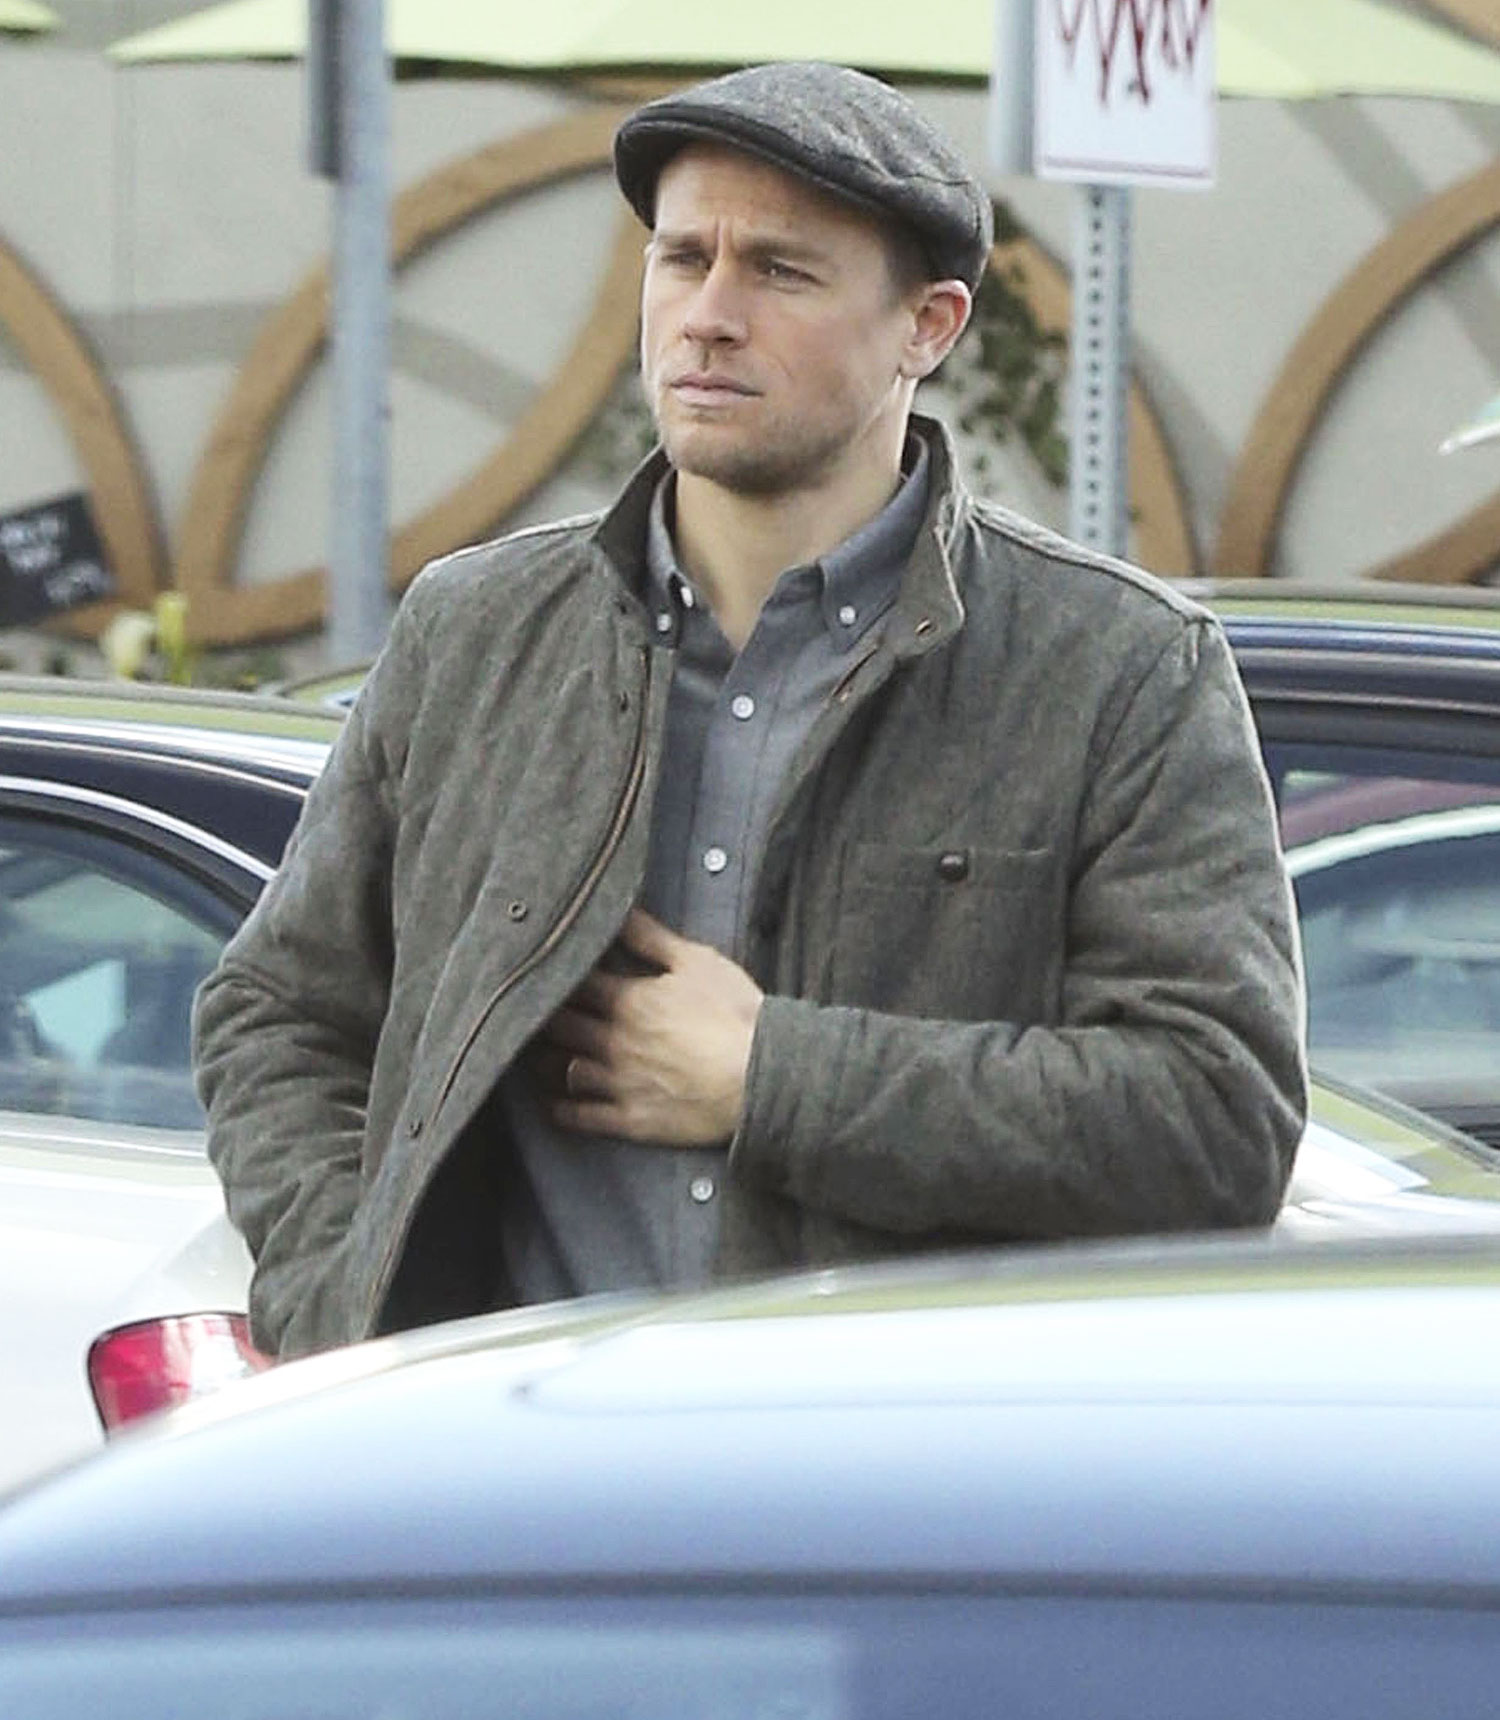 Exclusive... Charlie Hunnam Goes Grocery Shopping With Girlfriend In LA